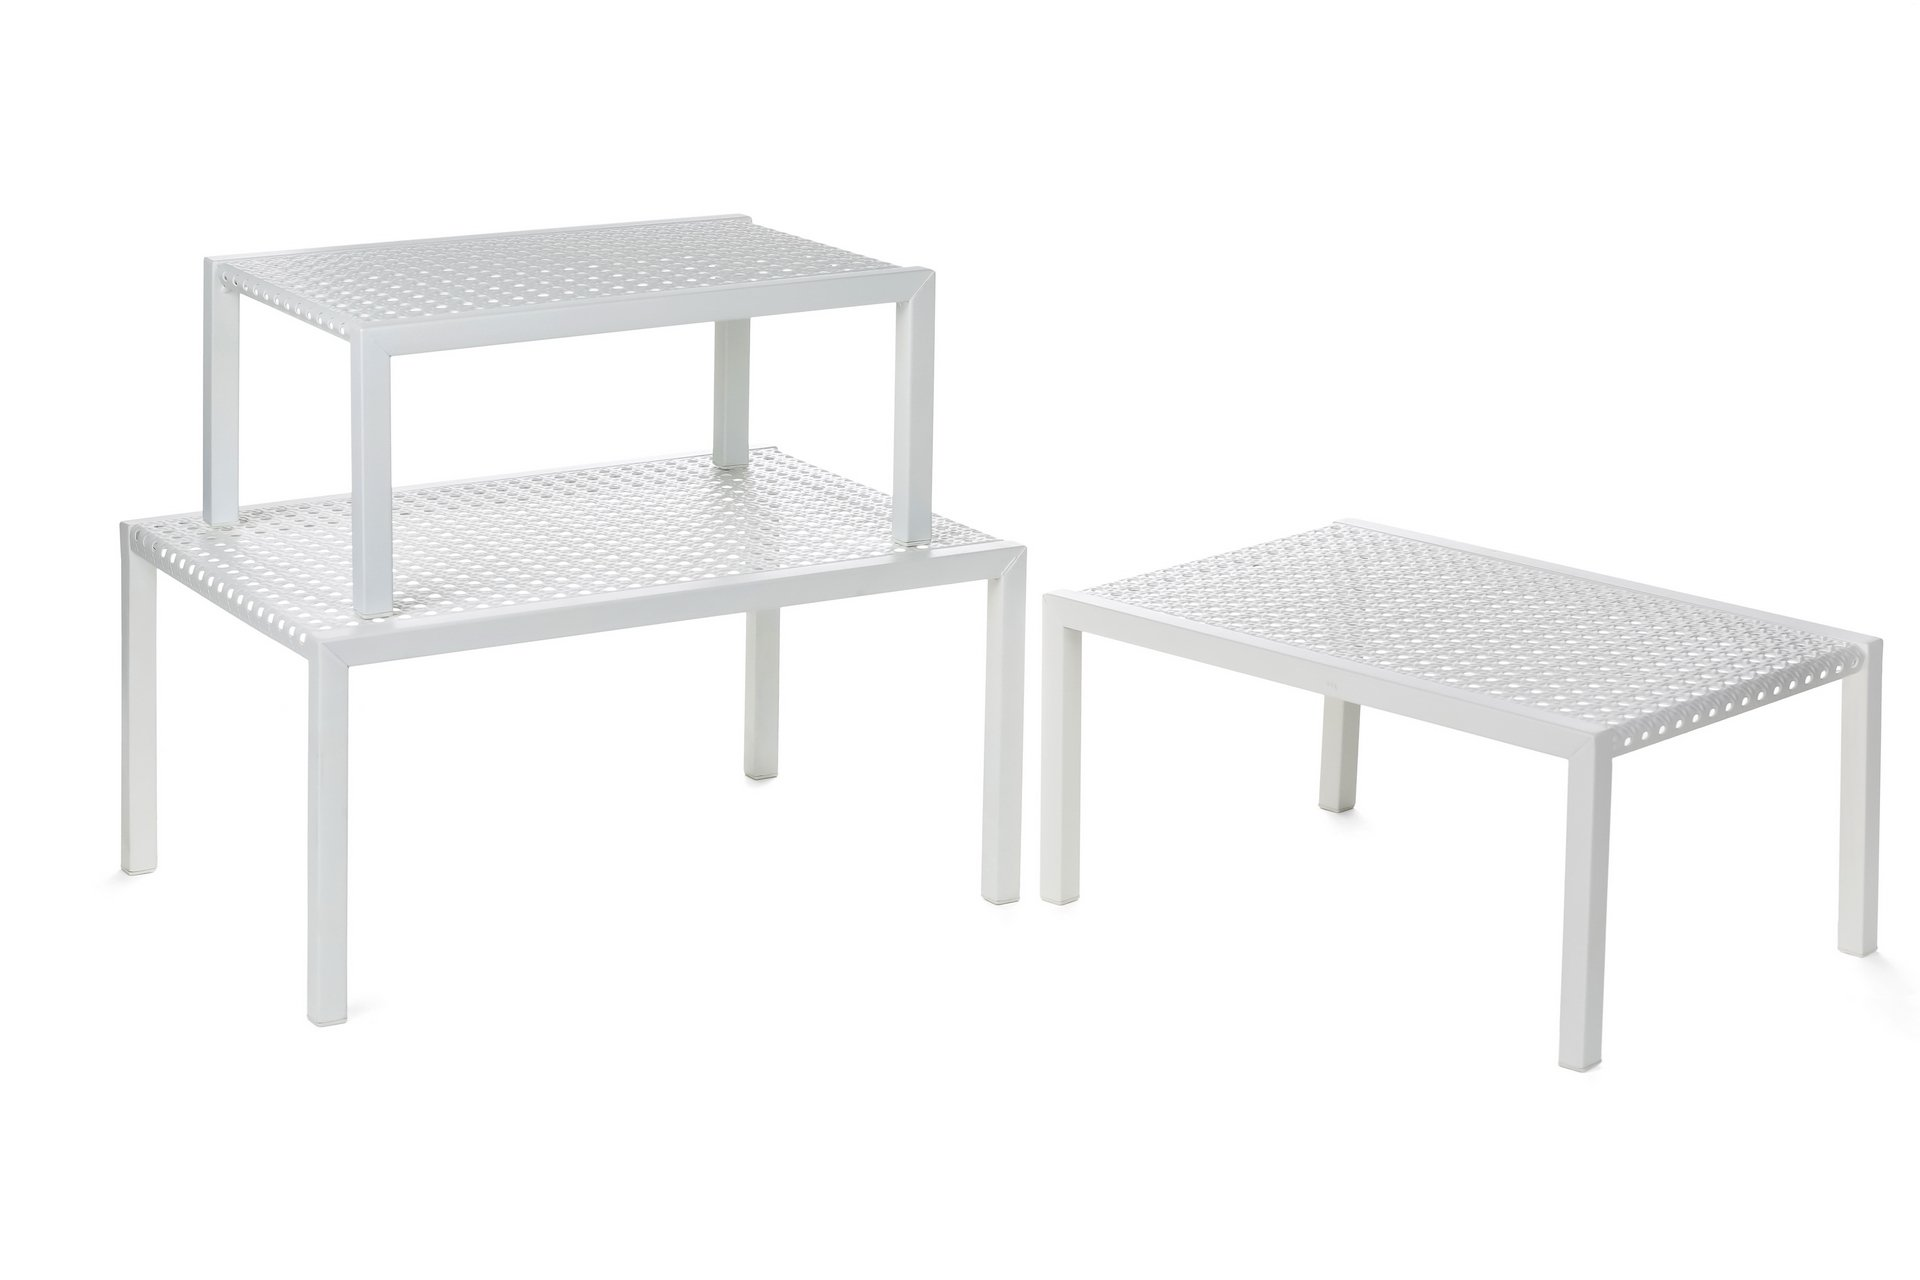 Heim Concept 3 Piece Nesting Counter Top Cabinet Counter Shelf Organizer Nesting Tables, Extendable & Stackable, White by Heim Concept